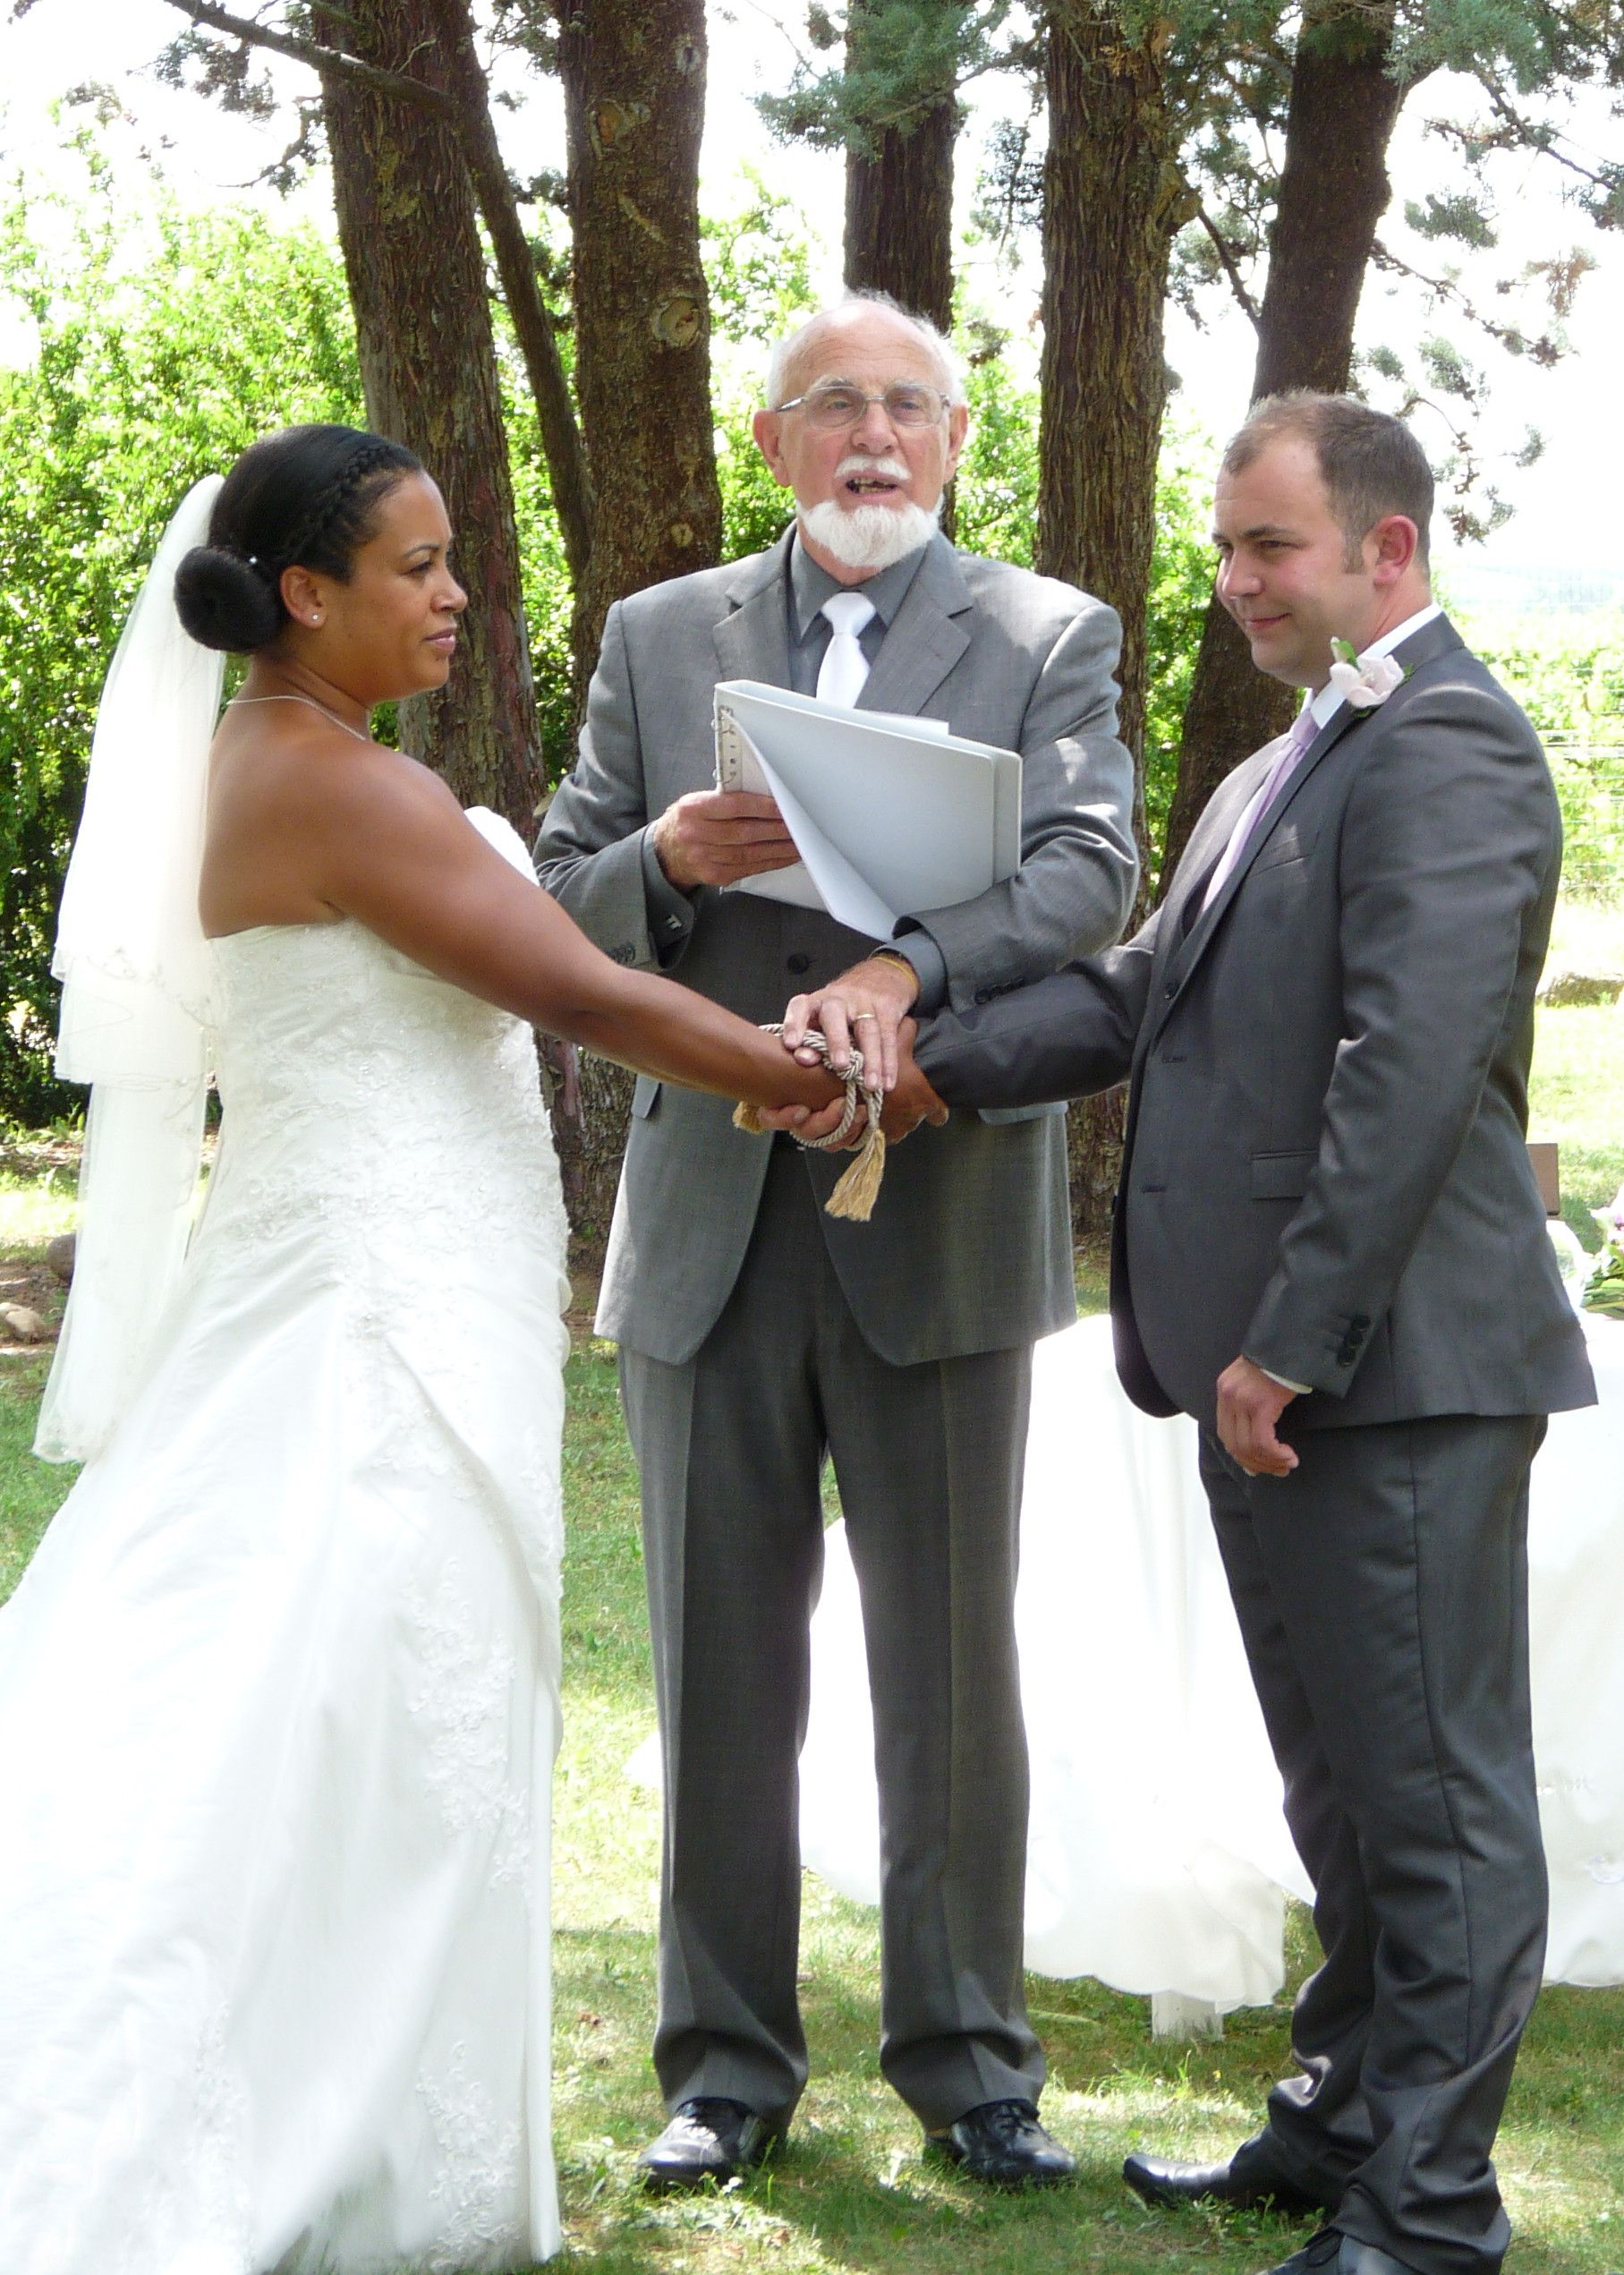 Family Ceremony At Le Moulin Neuf De Russan Gard France Tying The Knot